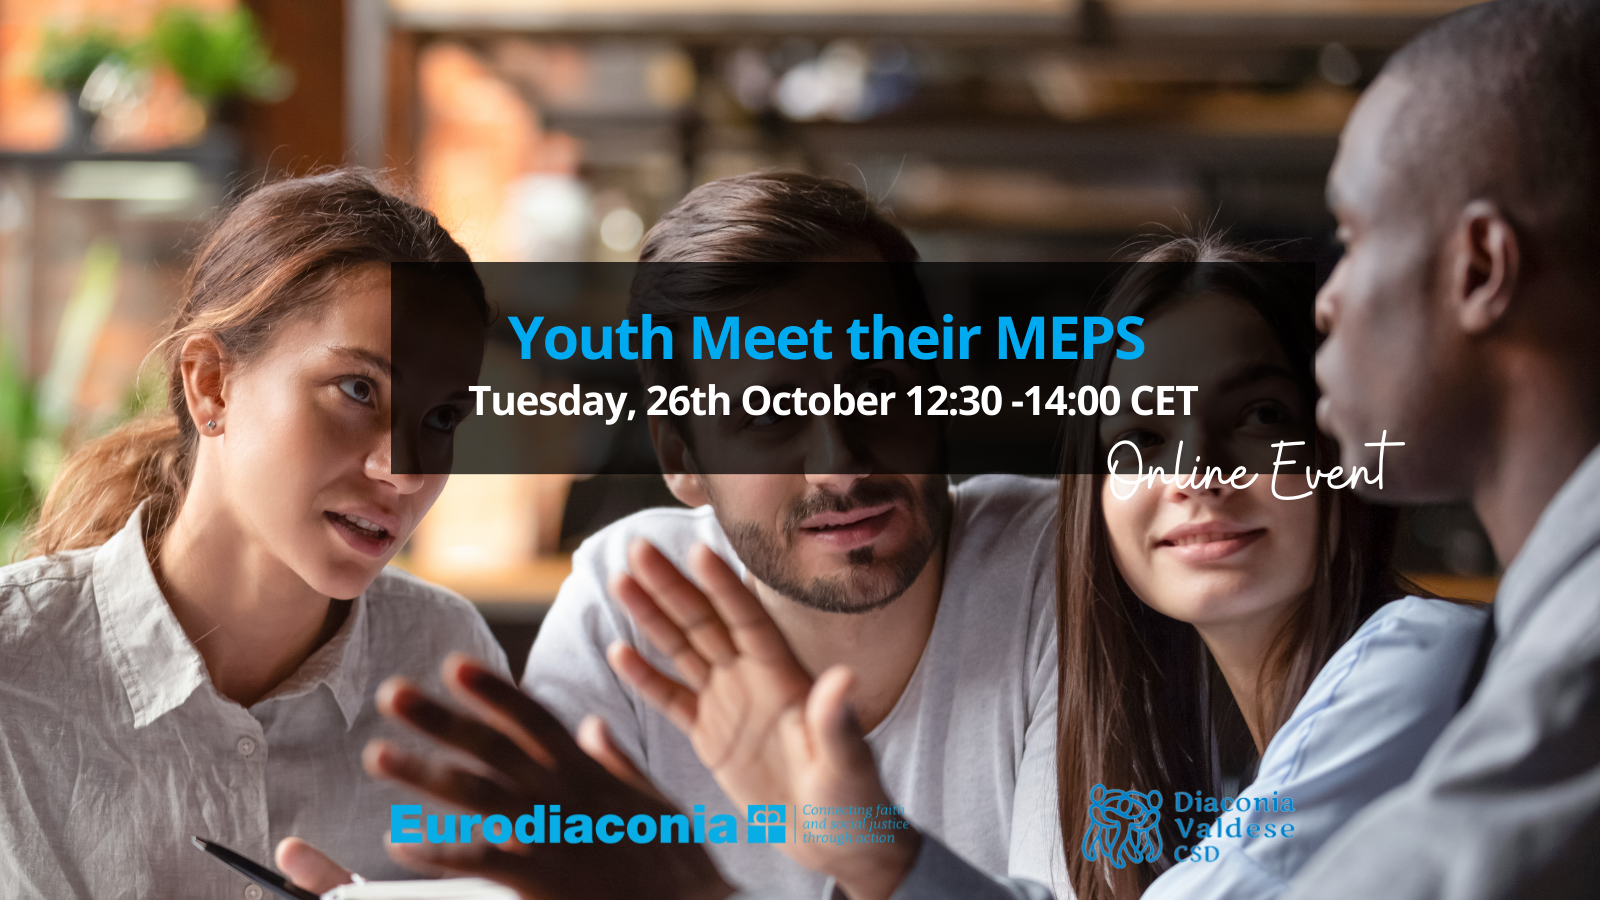 Youth Meet their MEPs